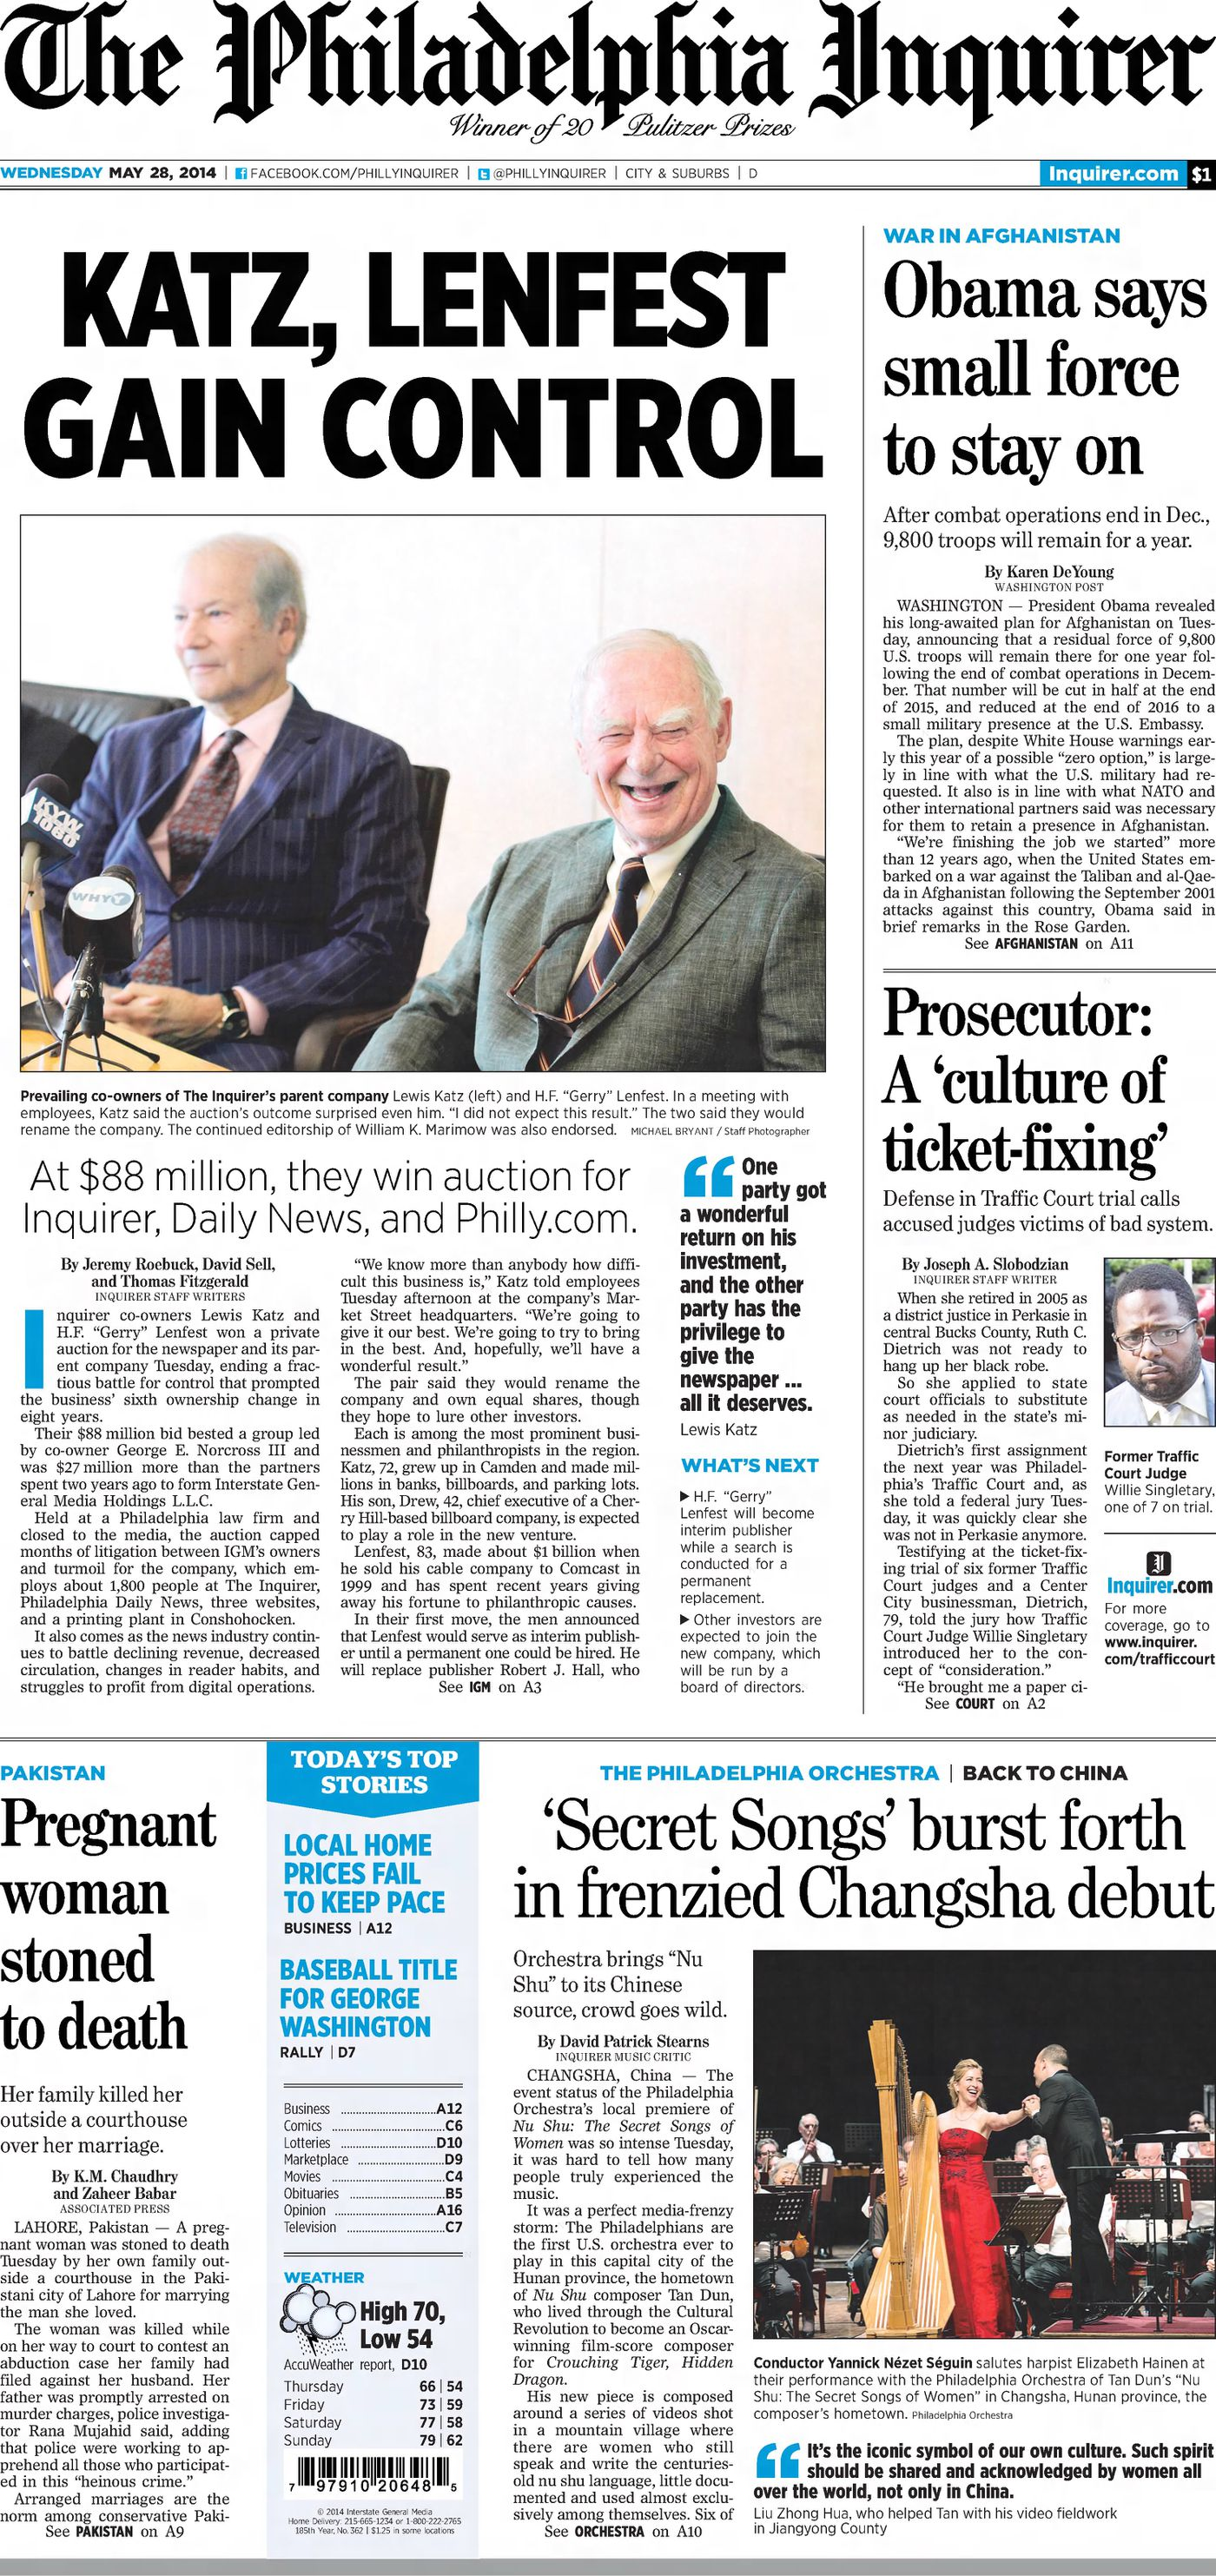 190 years of history in The Philadelphia Inquirer's front pages